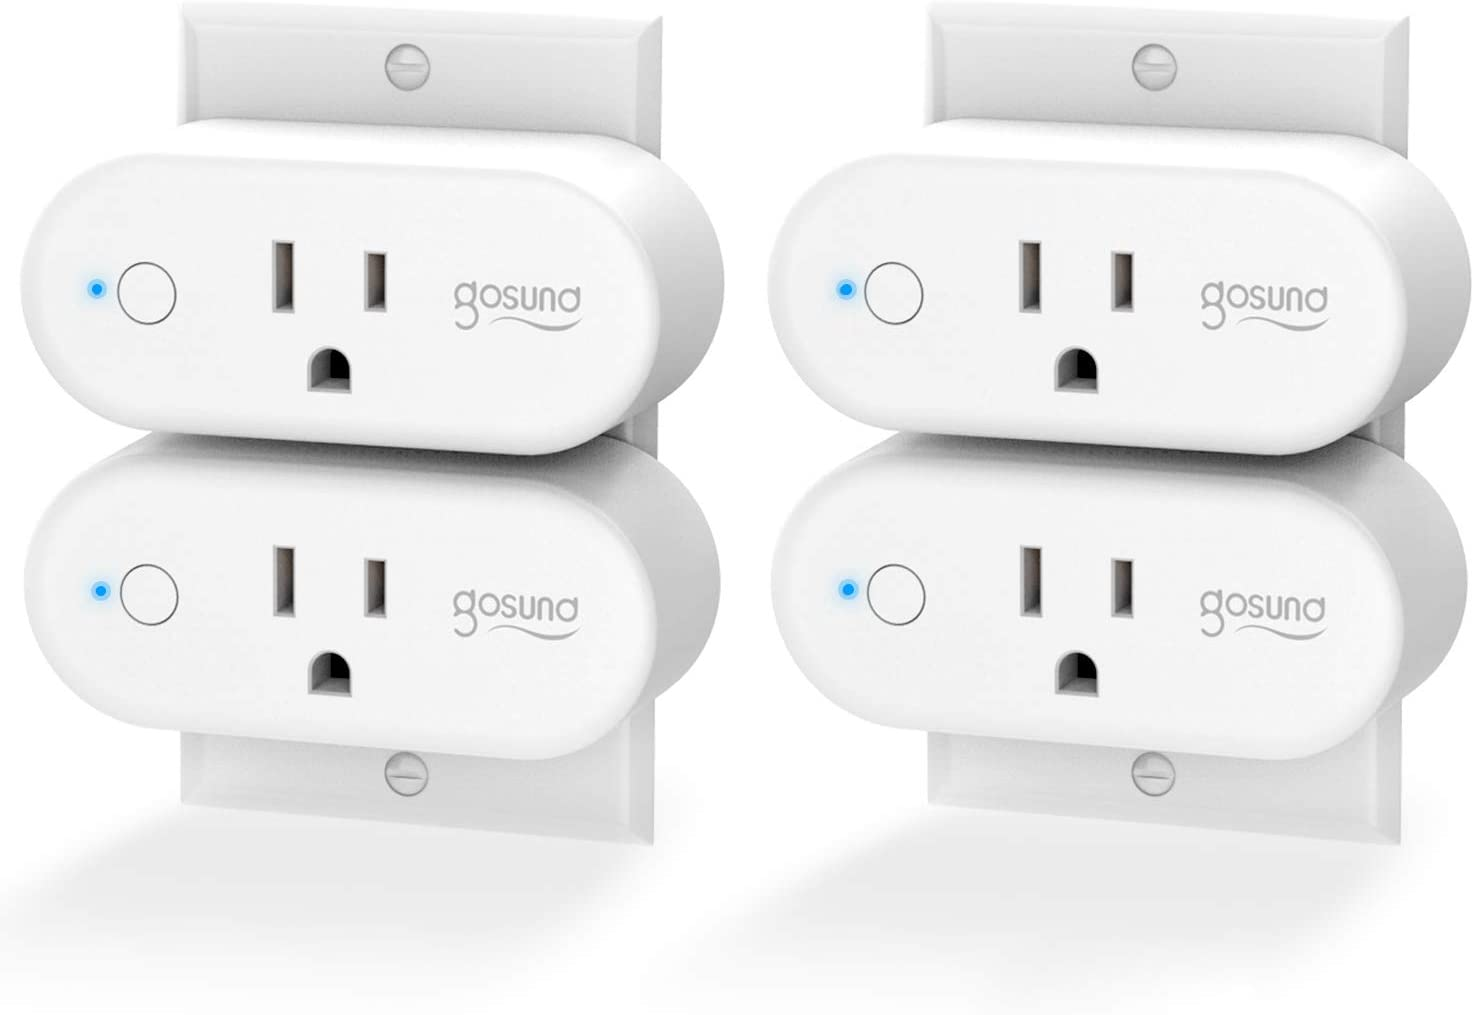 Smart Plug Gosund WiFi Outlet 15Amp Socket Compatible with Alexa Google Home Plugs, Voice and App Control, Schedule and Timer, No Hub Required, 4 Pack [Upgraded Version]